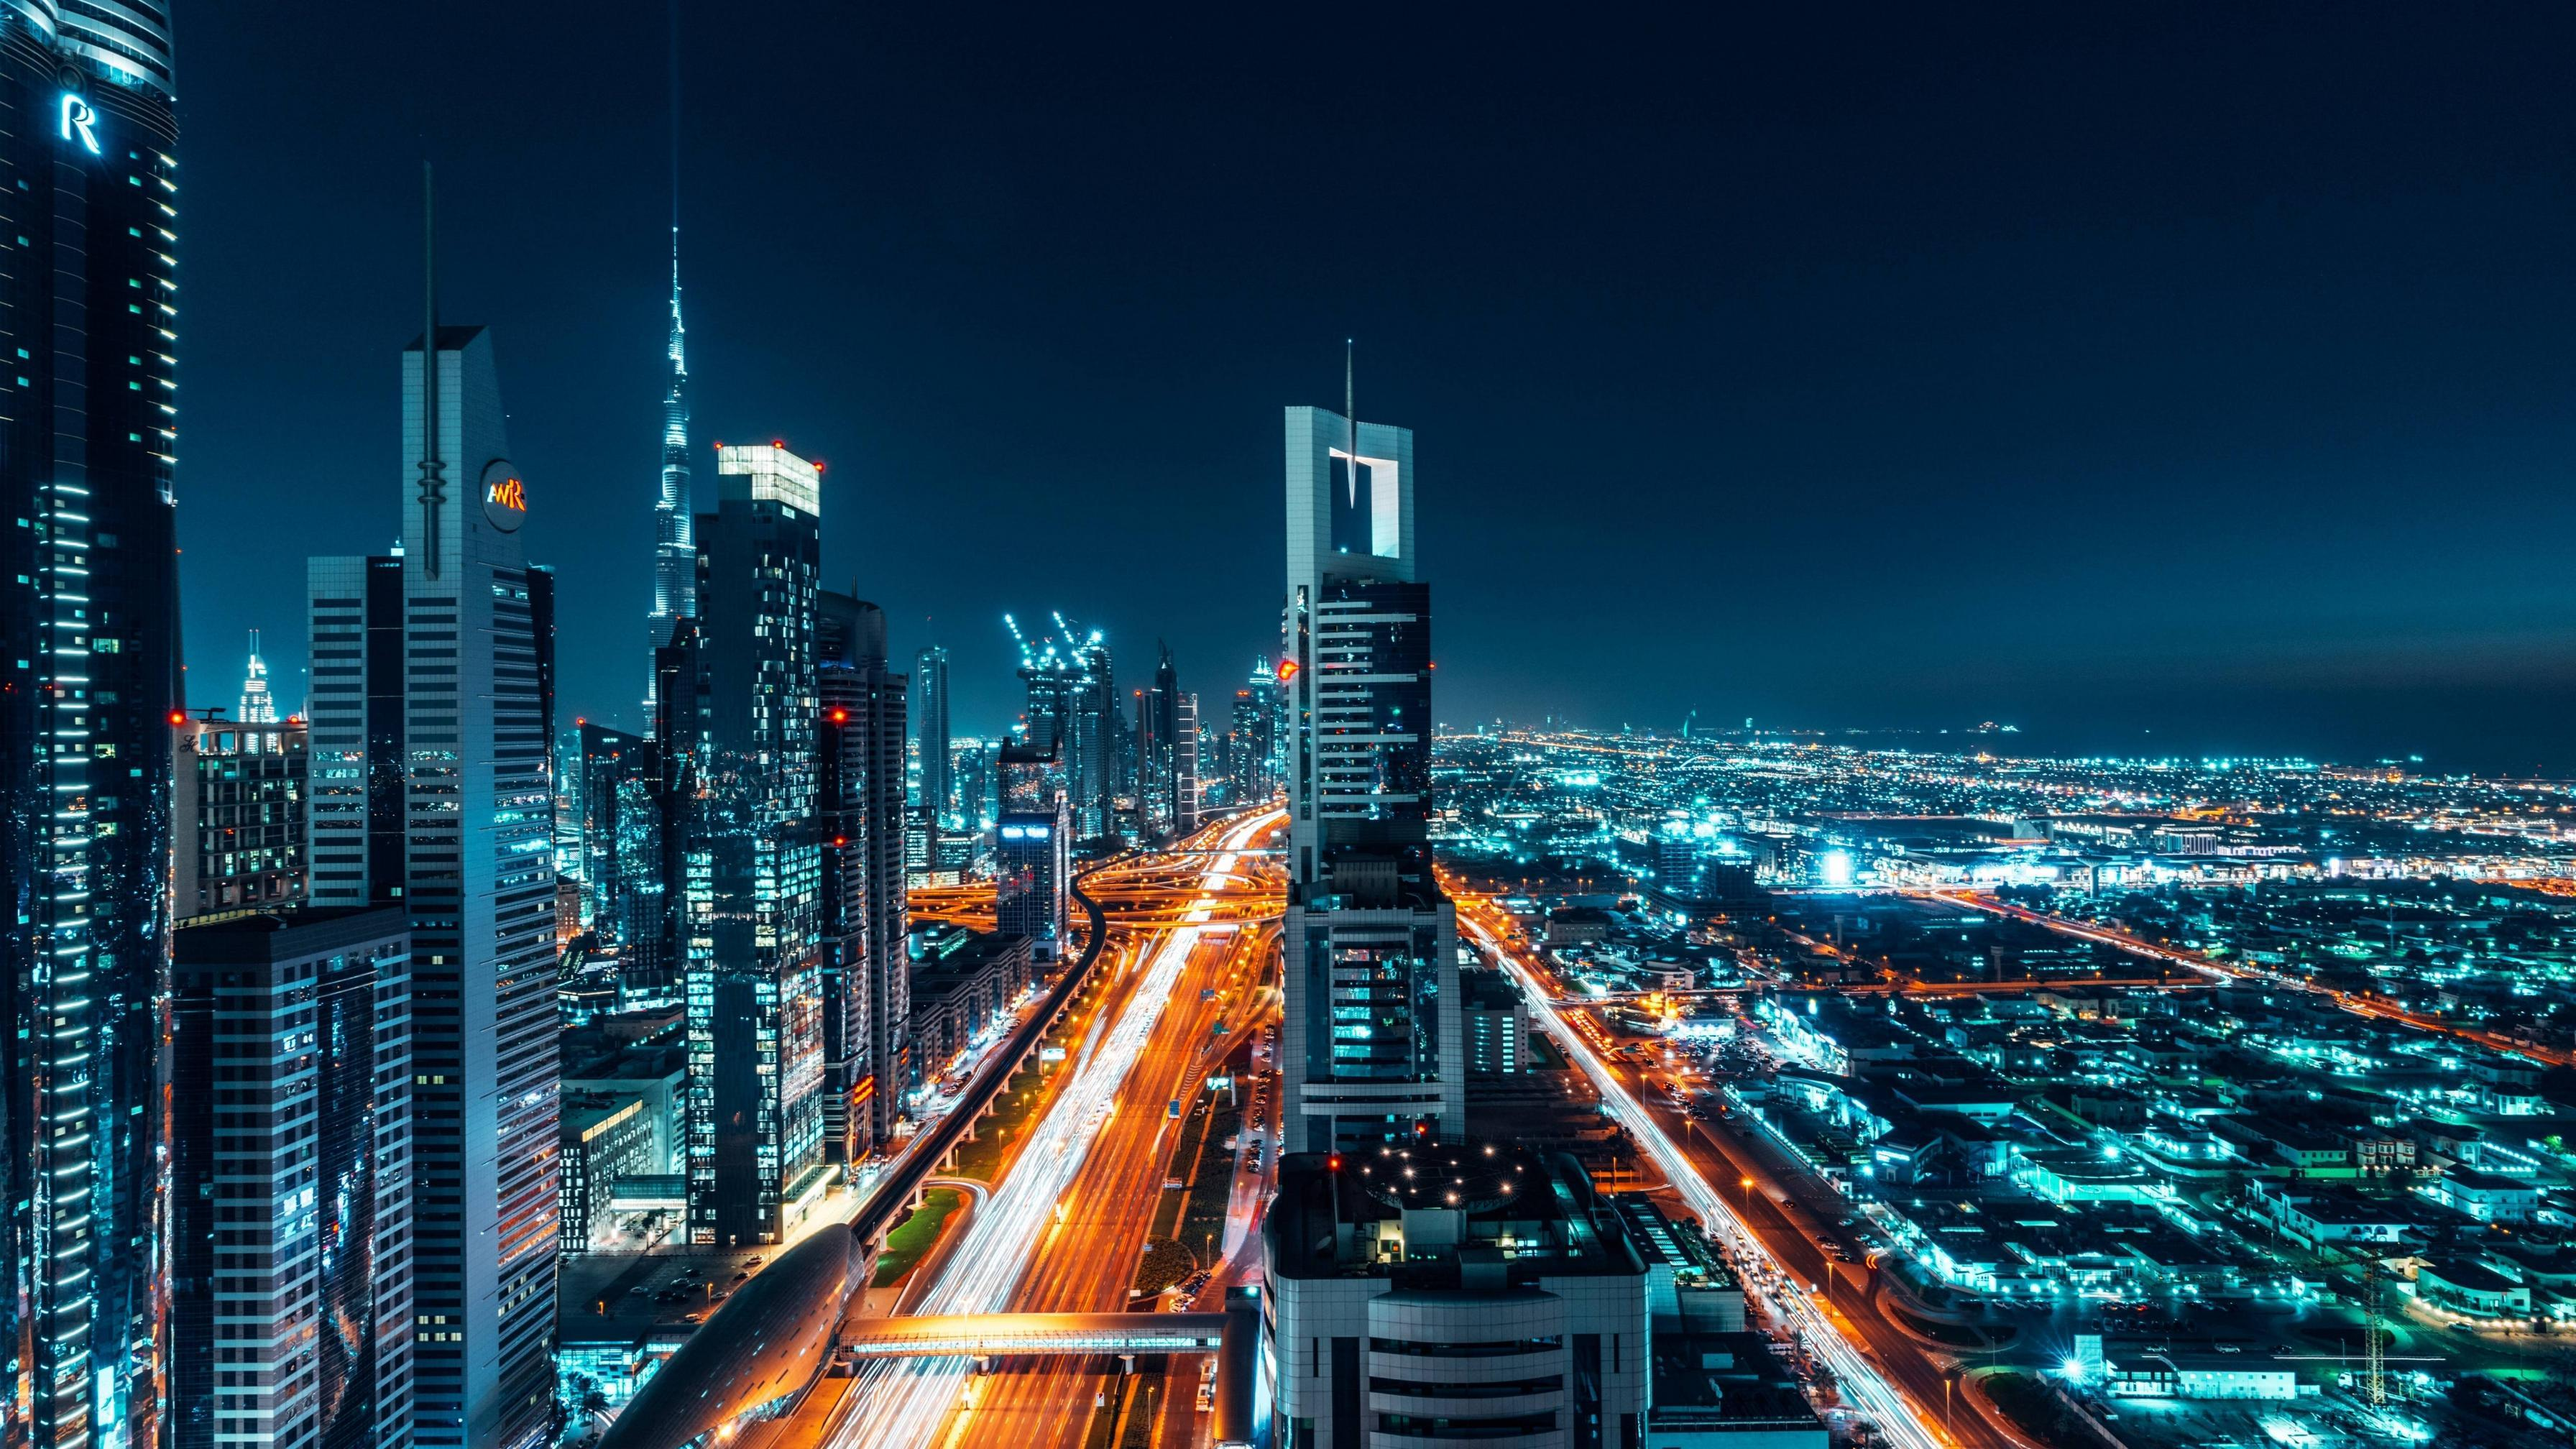 Download 5120x2880 wallpapers dubai, city, buildings, cityscape